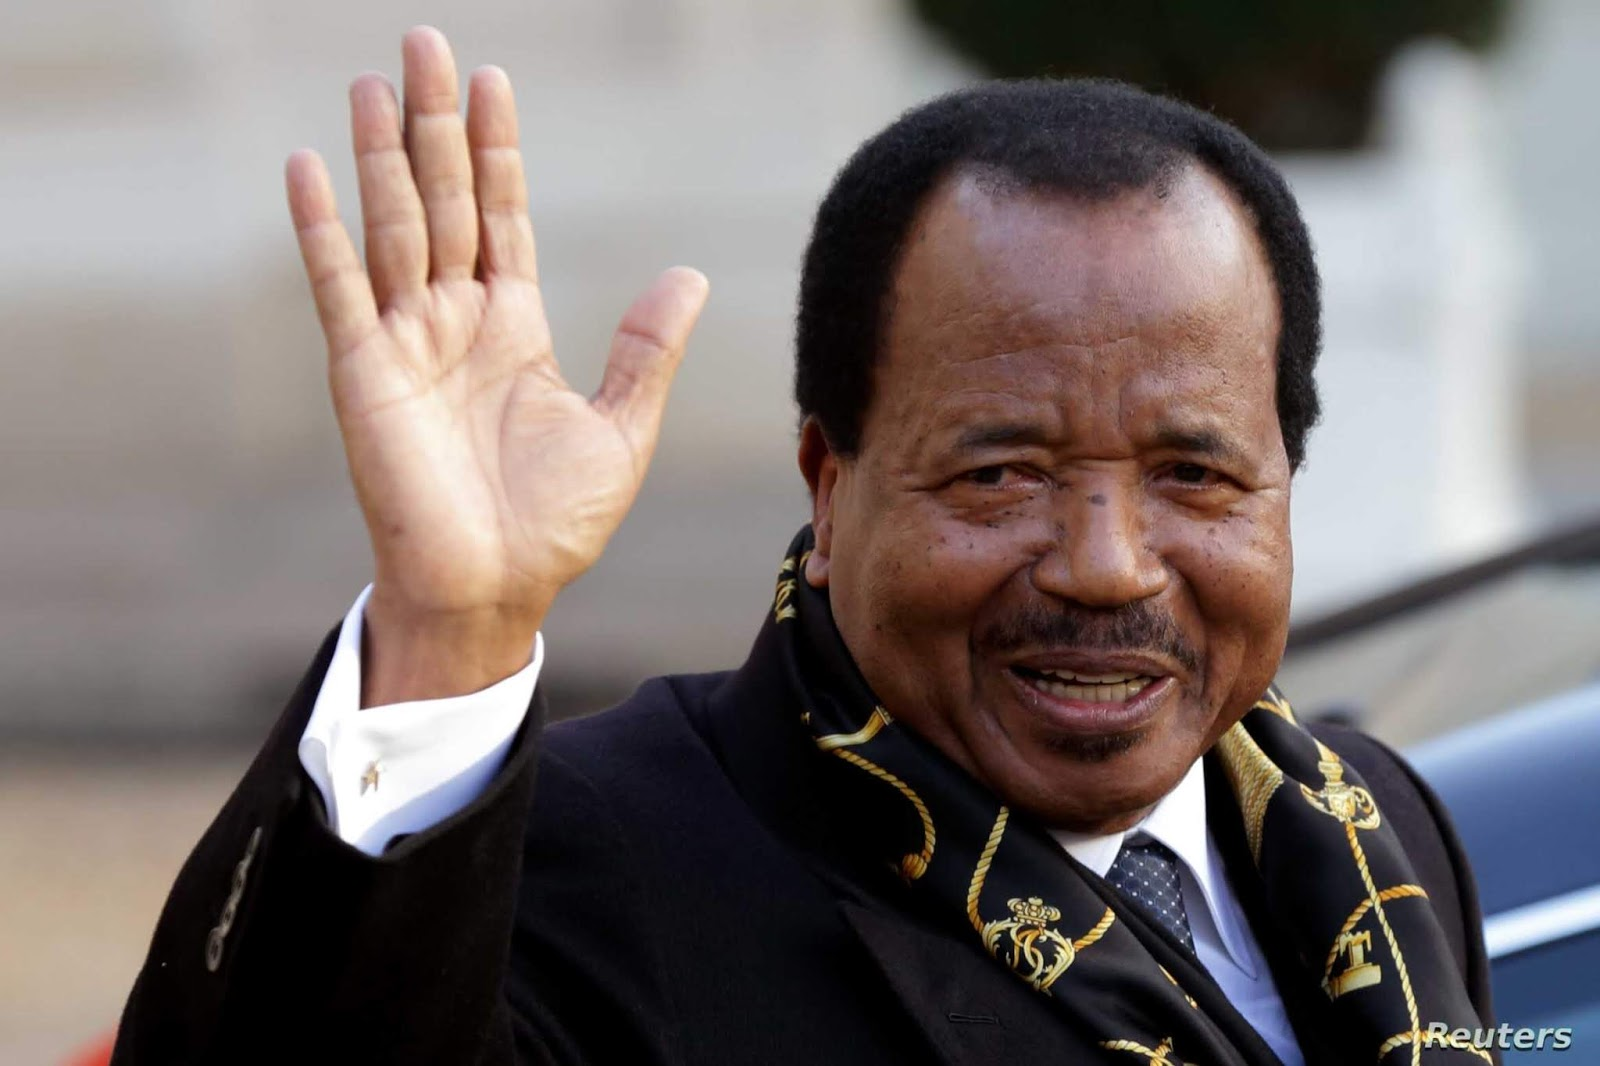 Cameroon: President Biya Reappears In Public After Weeks Of Absence